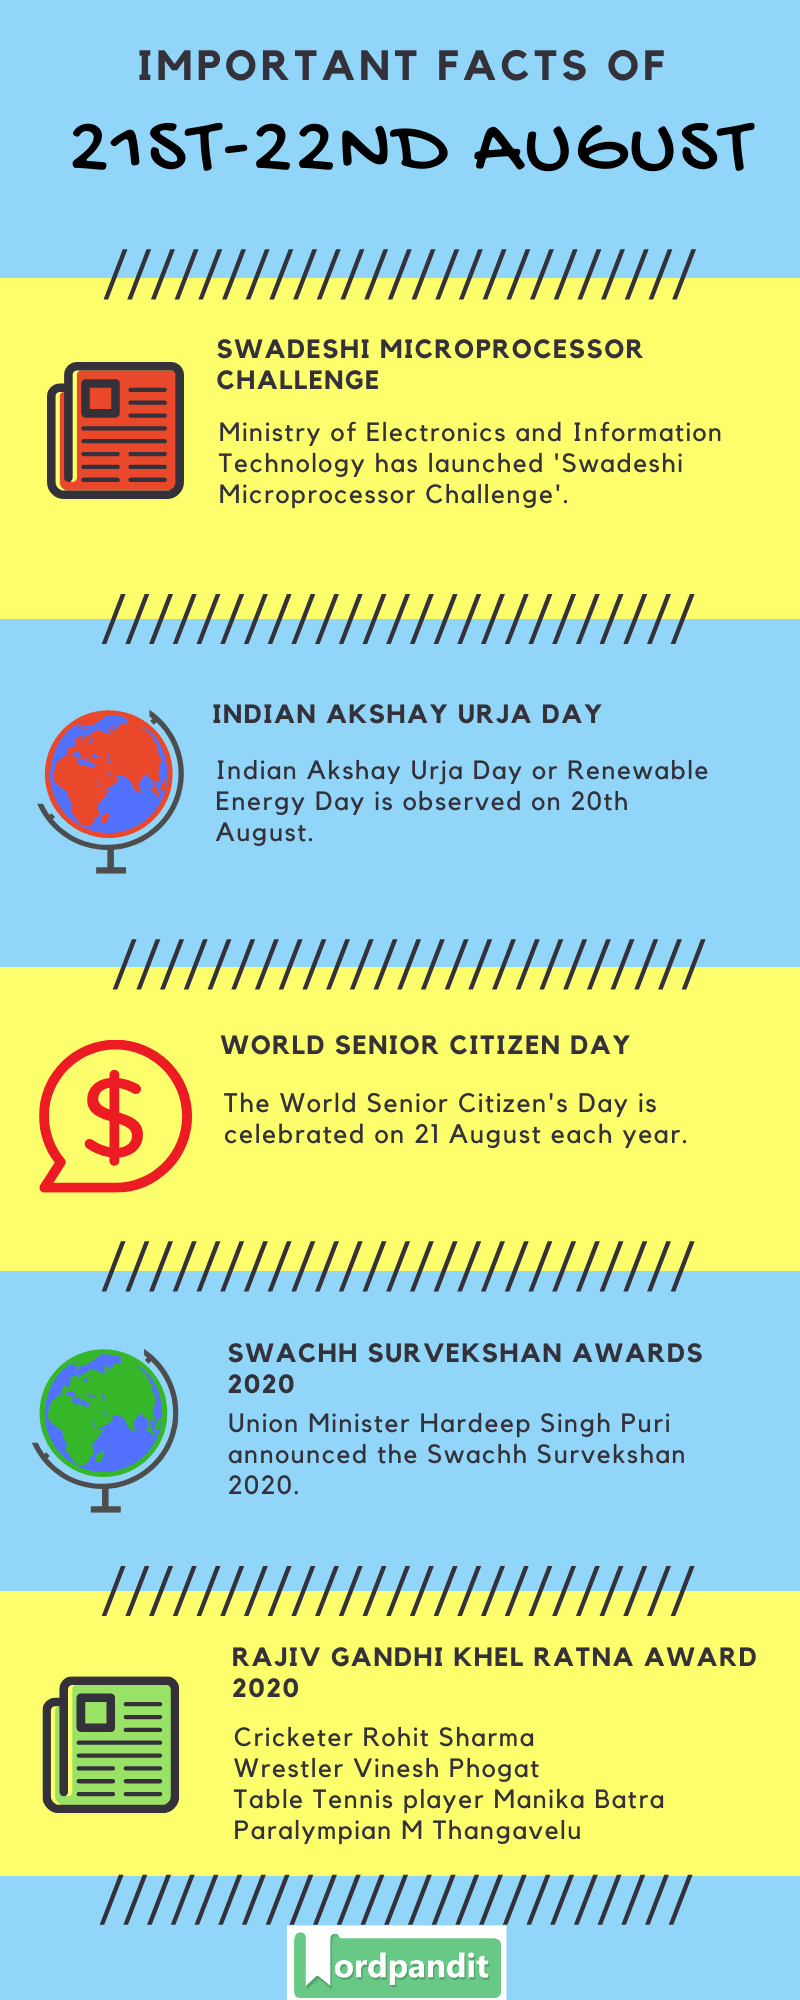 Daily Current Affairs 21st-22nd August 2020 Current Affairs Quiz 21st-22nd August 2020 Current Affairs Infographic